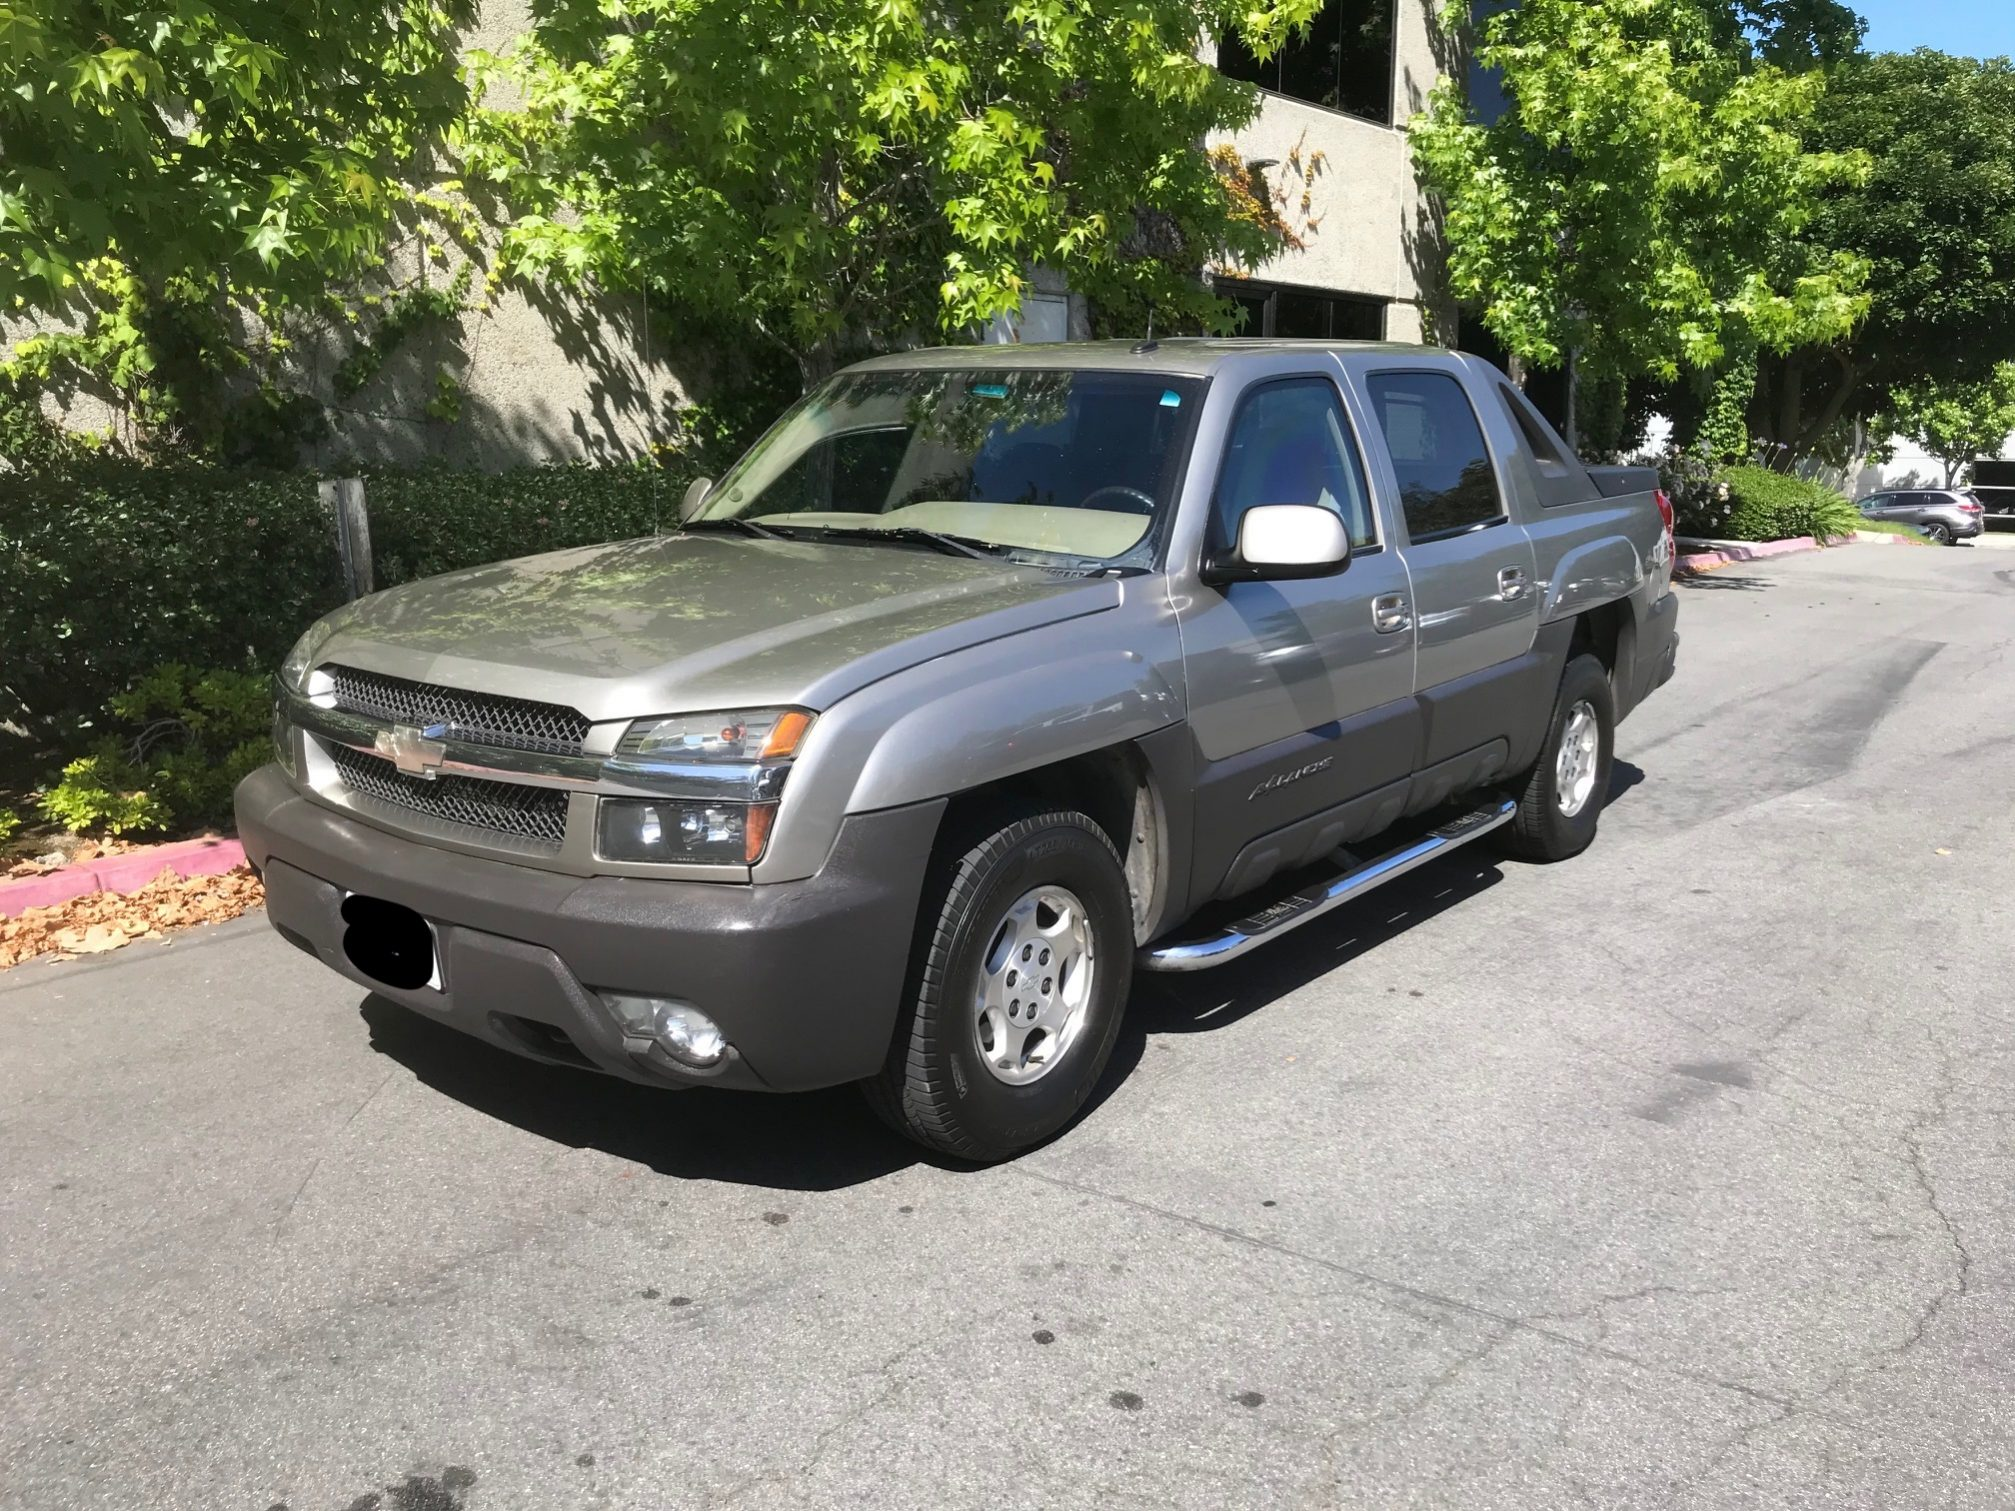 2003 Chevrolet Avalanche C1500 The Armored Group